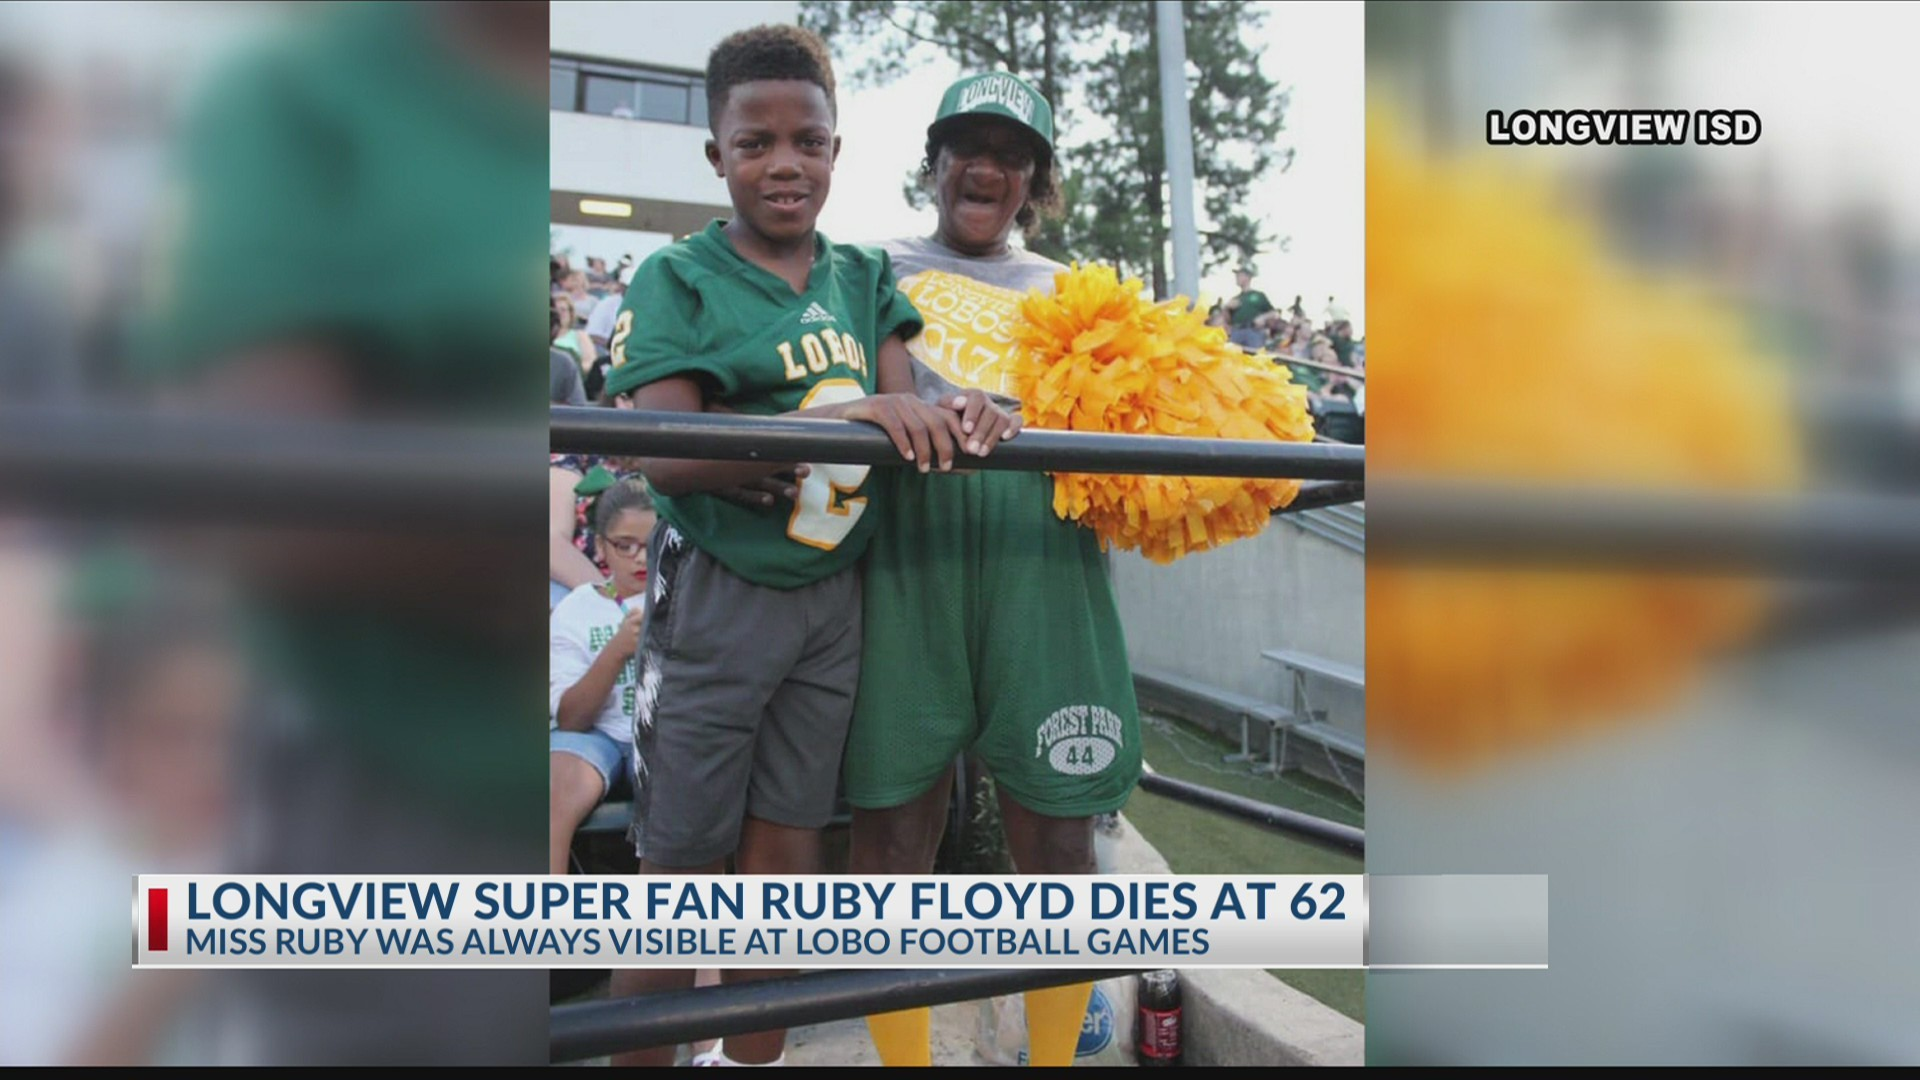 Longview_Lobo_super_fan_Ruby_Floyd_dies__0_20190528044240